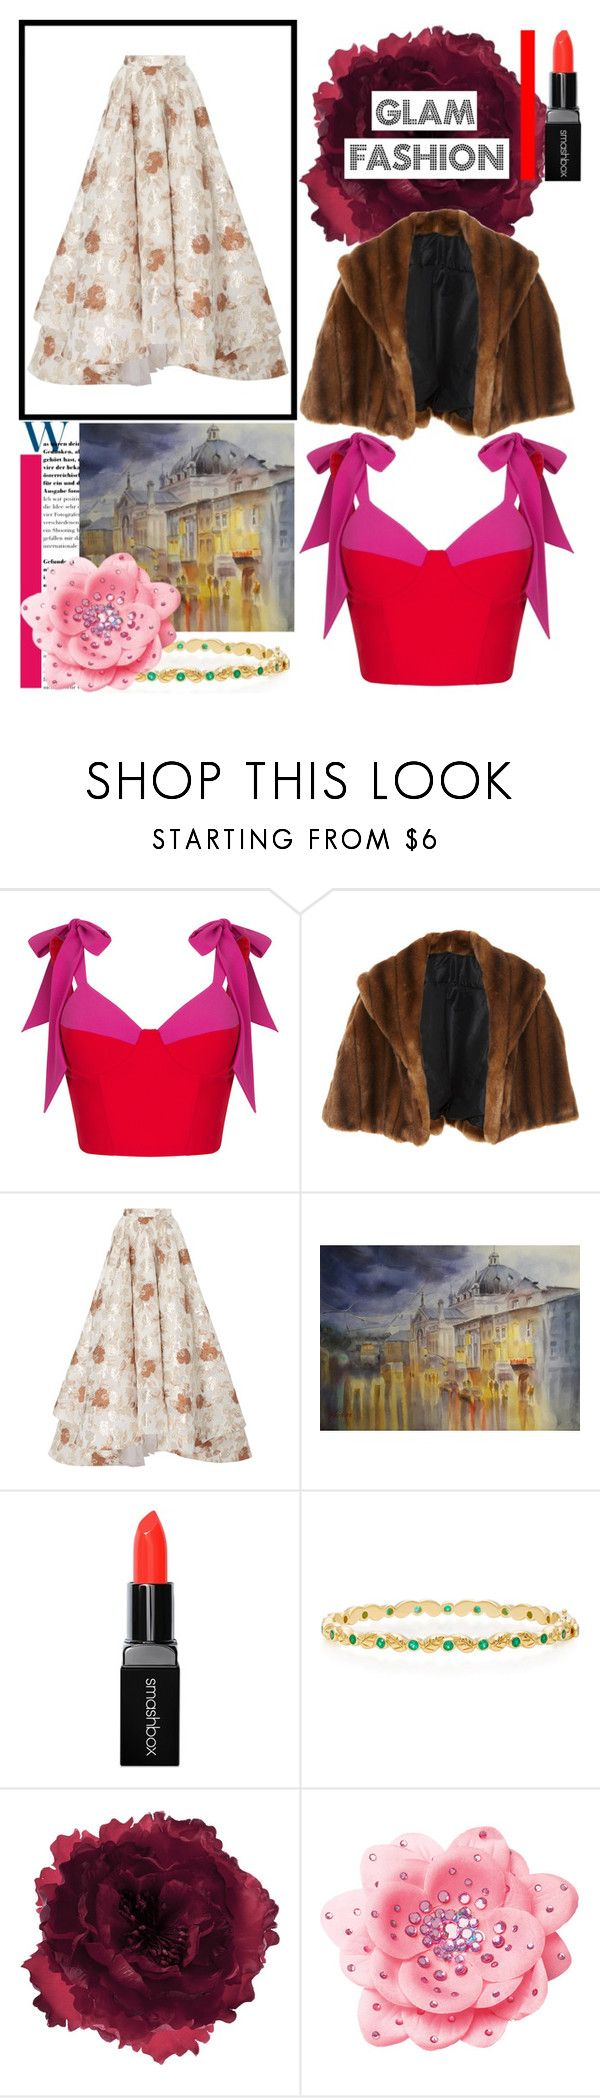 """""""Unexpected Pairings"""" by osmianannya ❤ liked on Polyvore featuring Rasario, Marei 1998, Christian Siriano, Smashbox, Temple St. Clair, Accessorize, skirt, makeup, jewelry and art"""